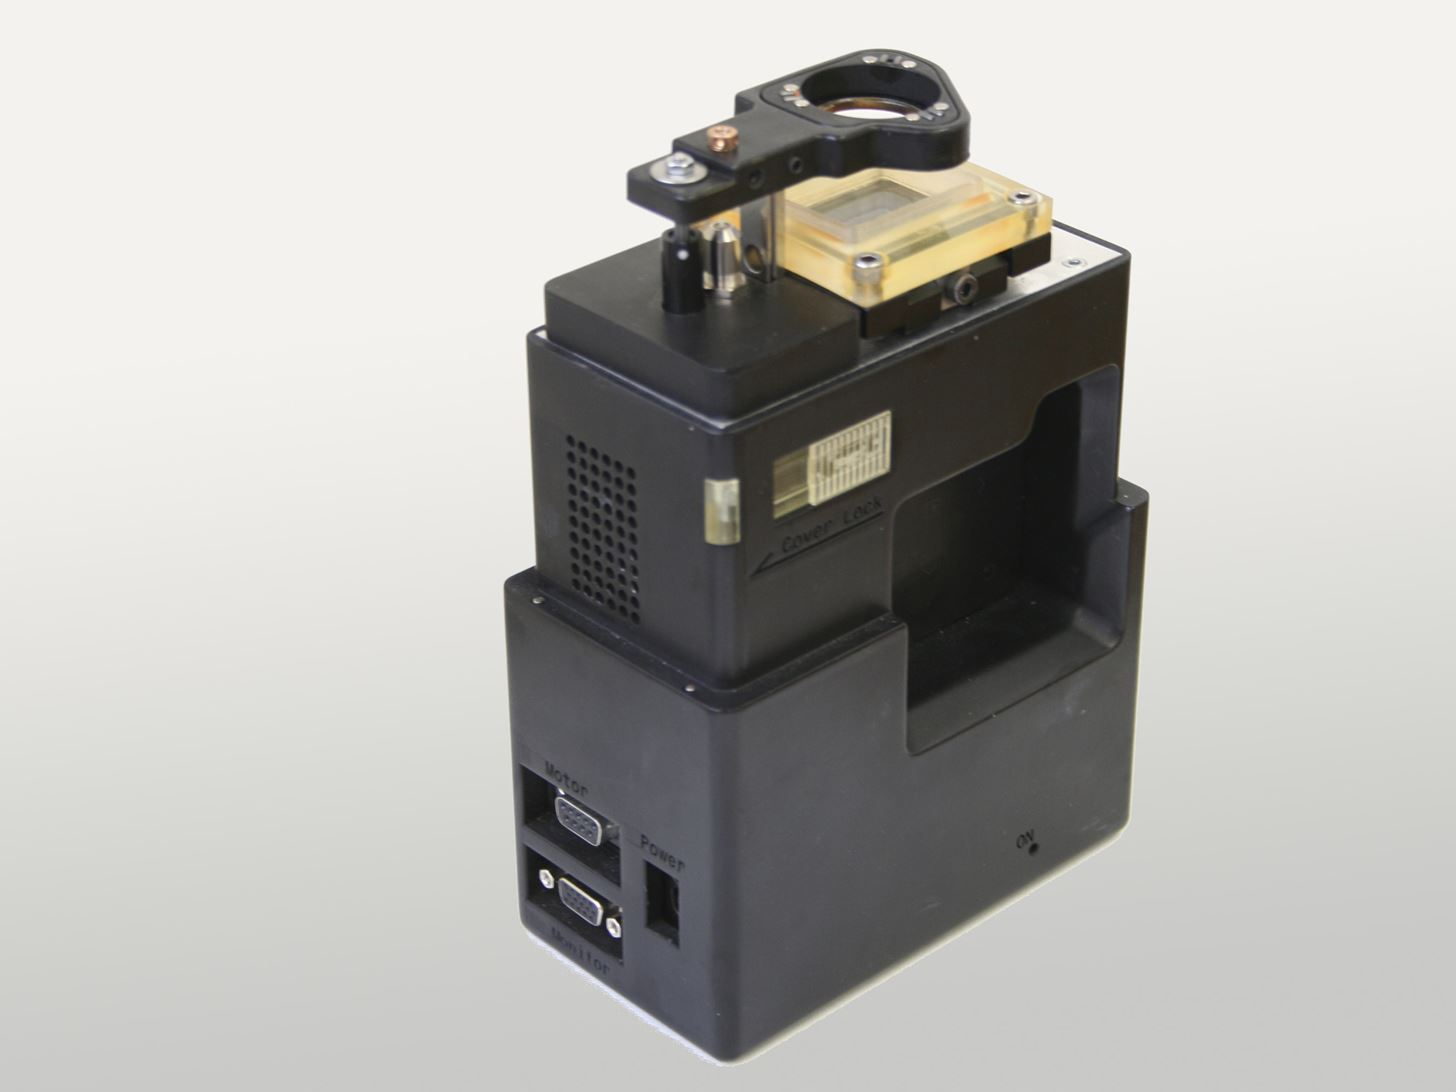 World's Smallest 3D Printer Makes Super Tiny Solid Objects